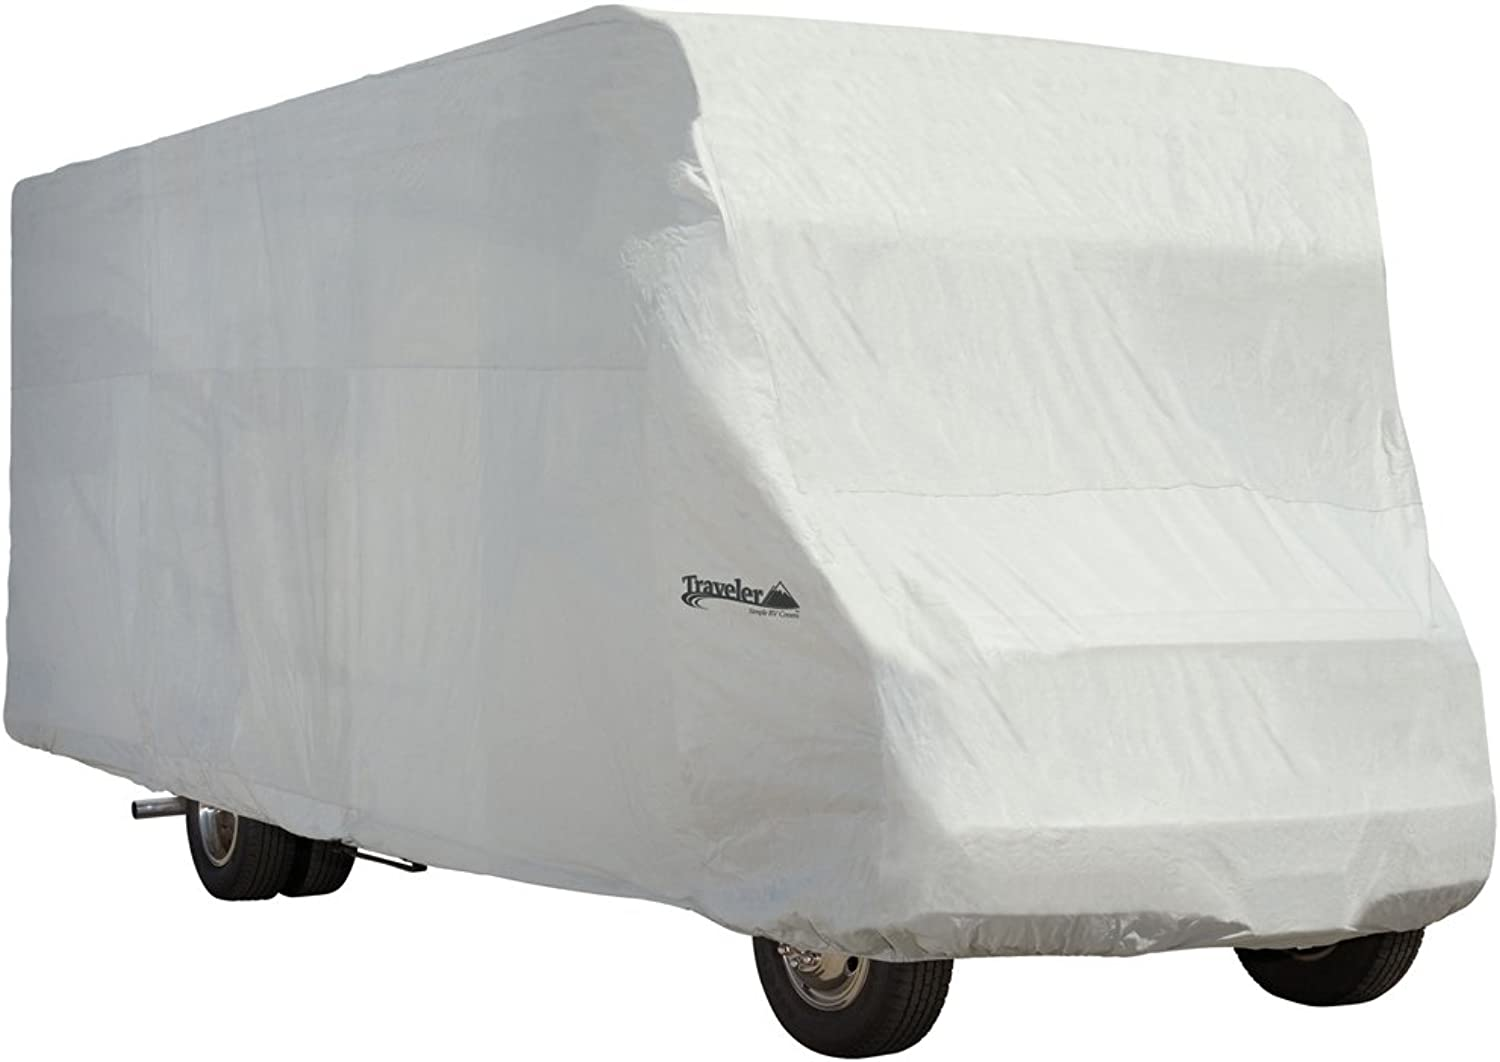 Traveler by Eevelle Class C RV Cover  fits 24'26' Trailers  330  L x 105  W x 108  H